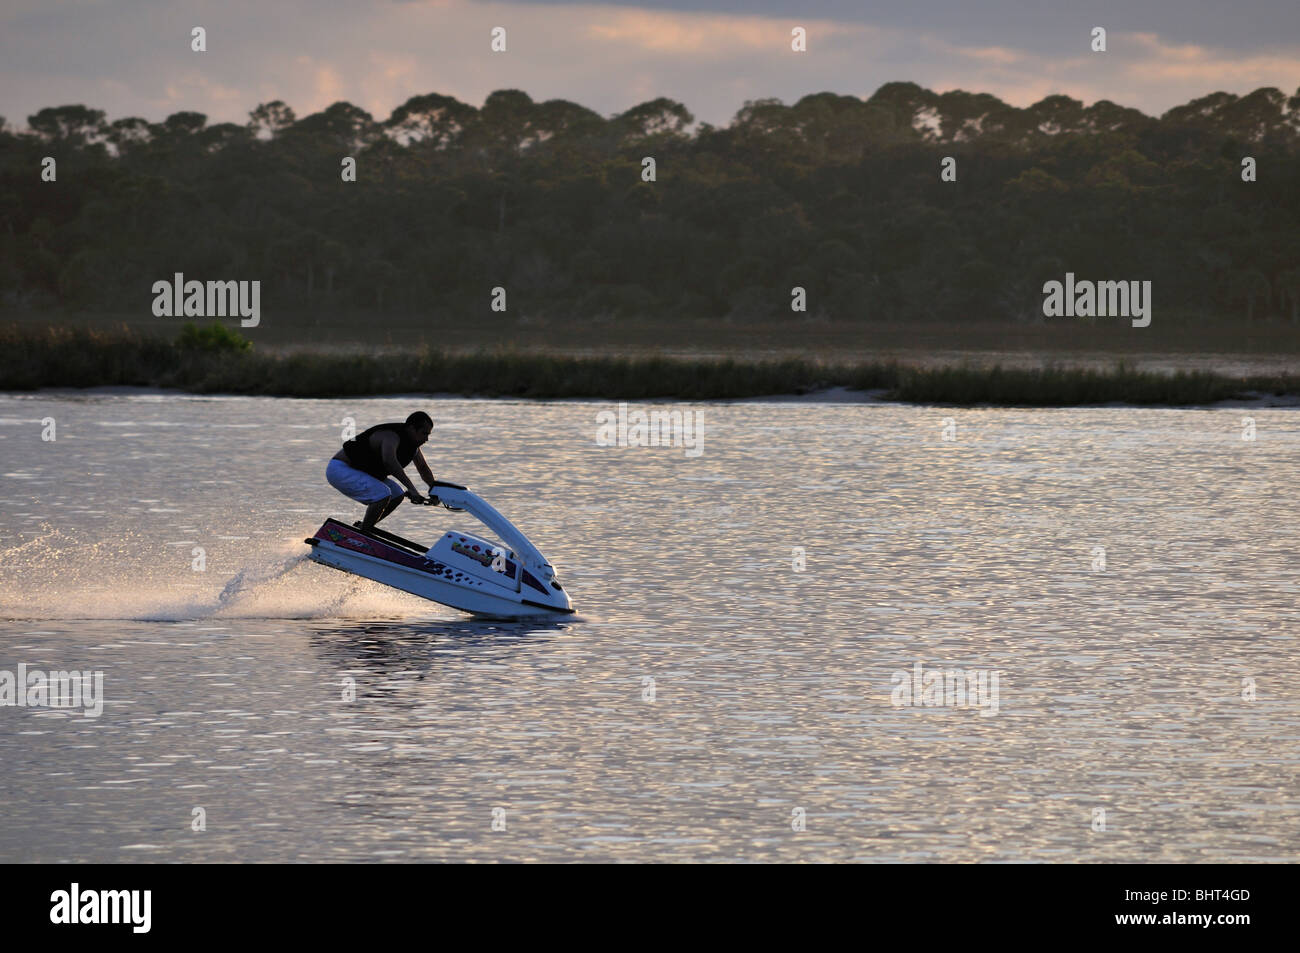 A personal watercraft plows through the Halifax River in eastern Florida - Stock Image